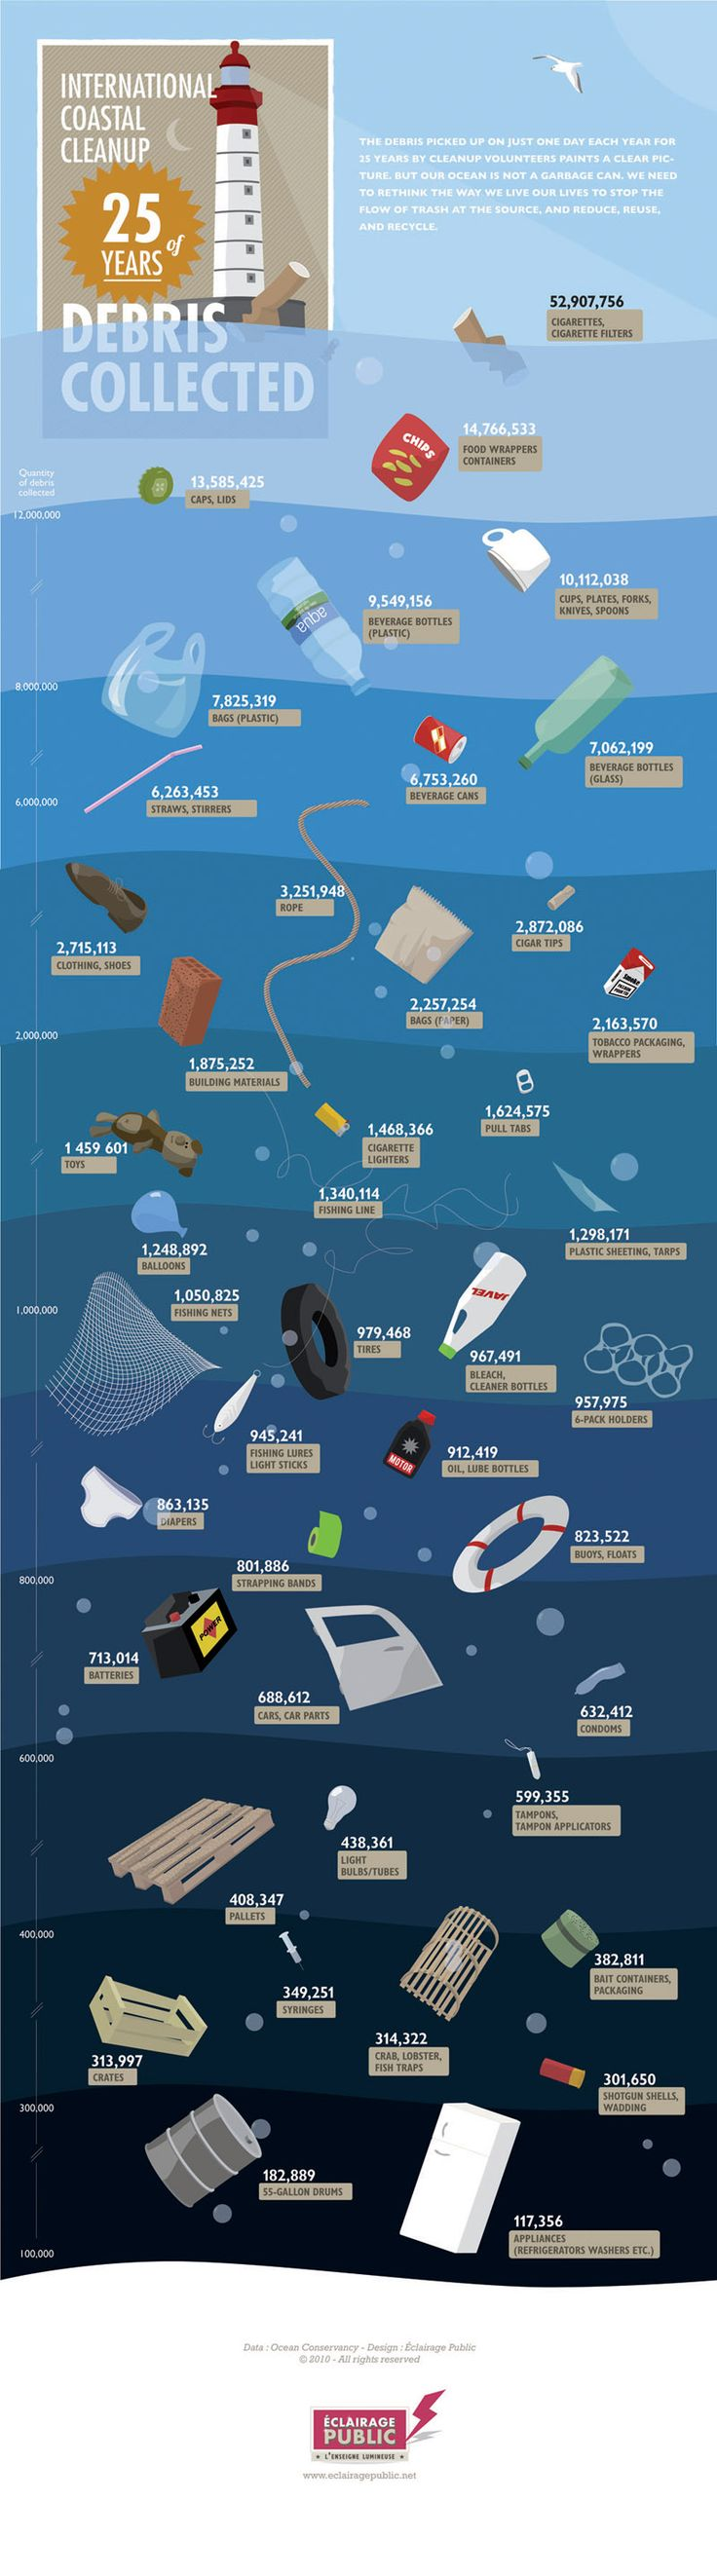 25 years of ocean debris collected -- cigarette butts top the list!